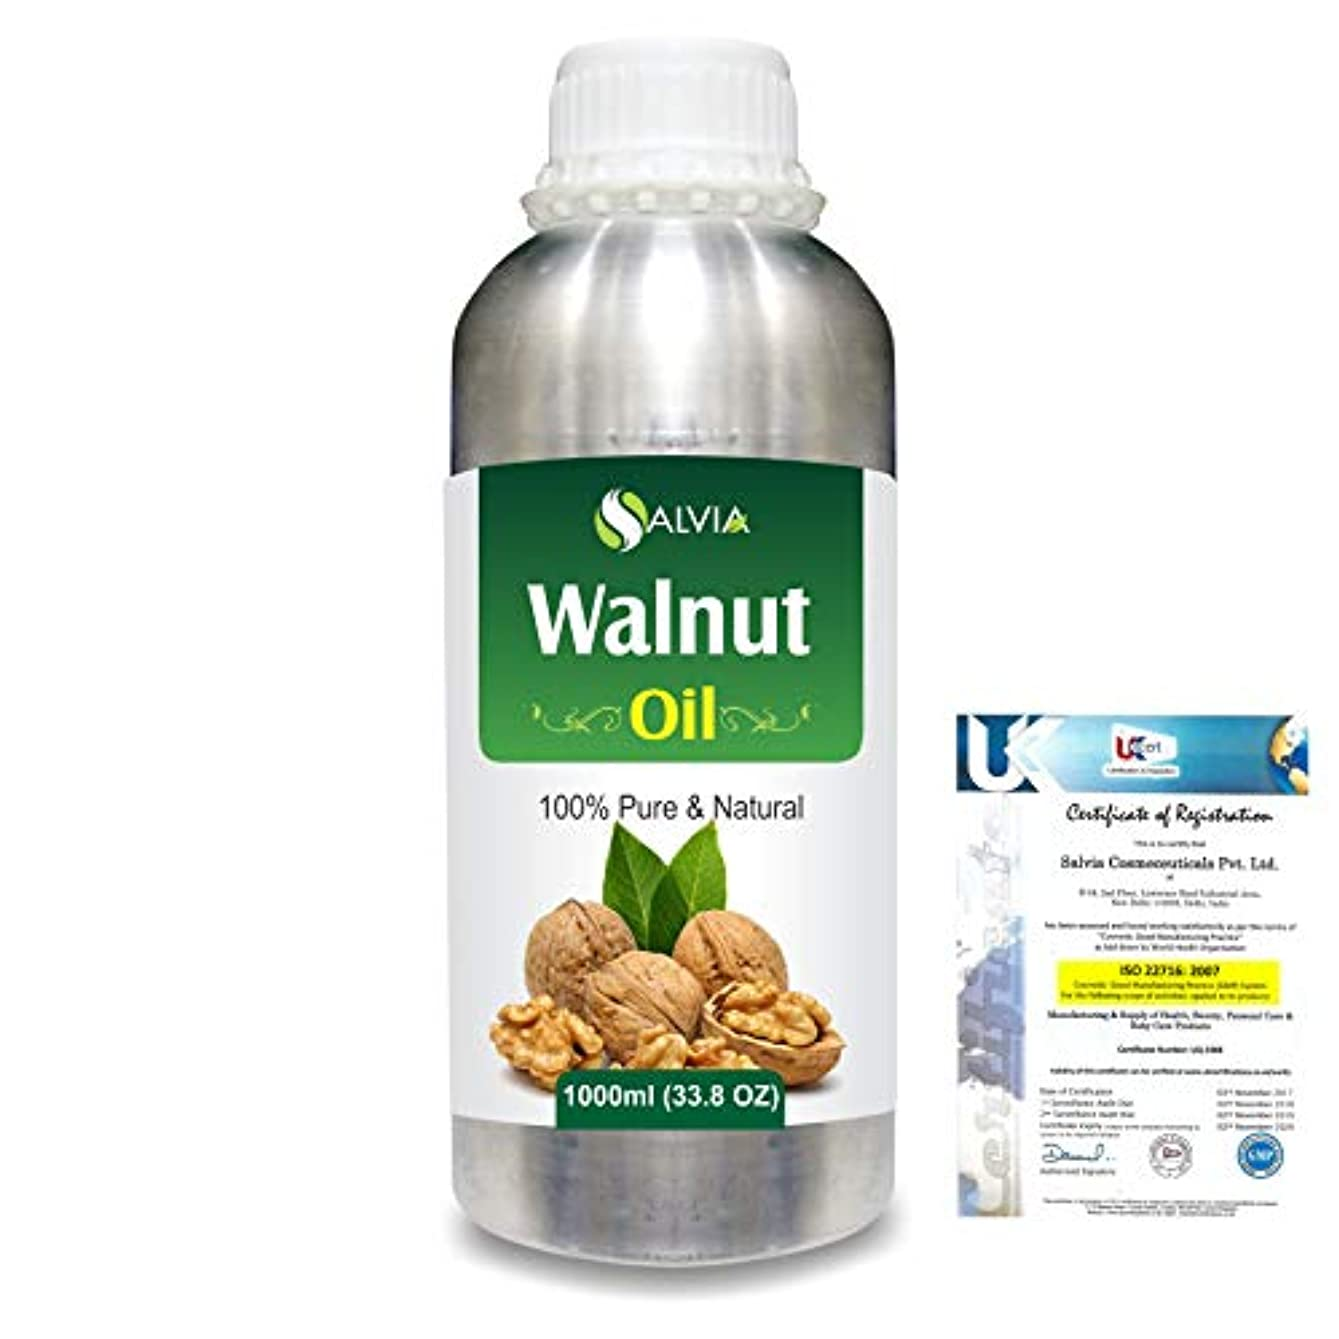 めったに書き込み技術的なWalnut (Juglans regia)100% Natural Pure Carrier Oil 1000ml/33.8fl.oz.